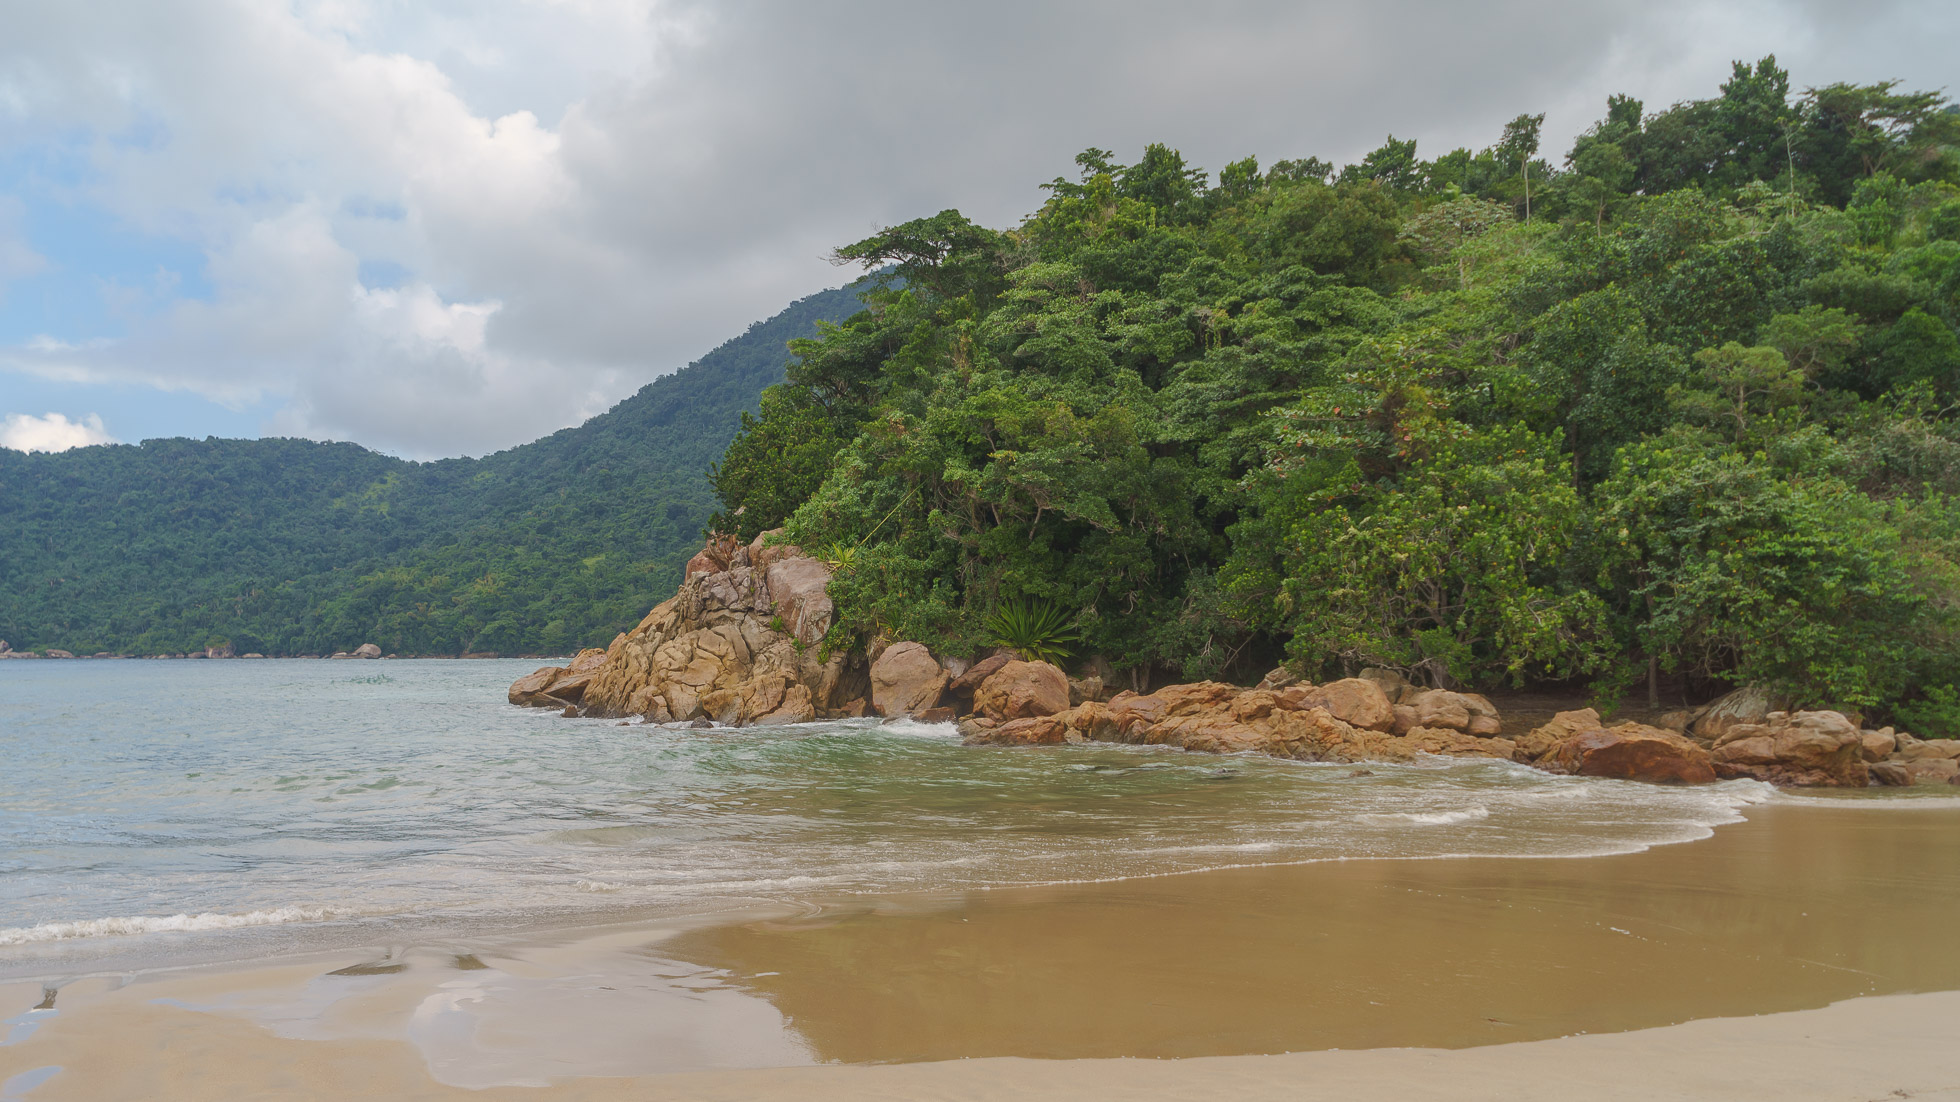 Lesvoyageuses-paraty-bresil-guide-voyage-167